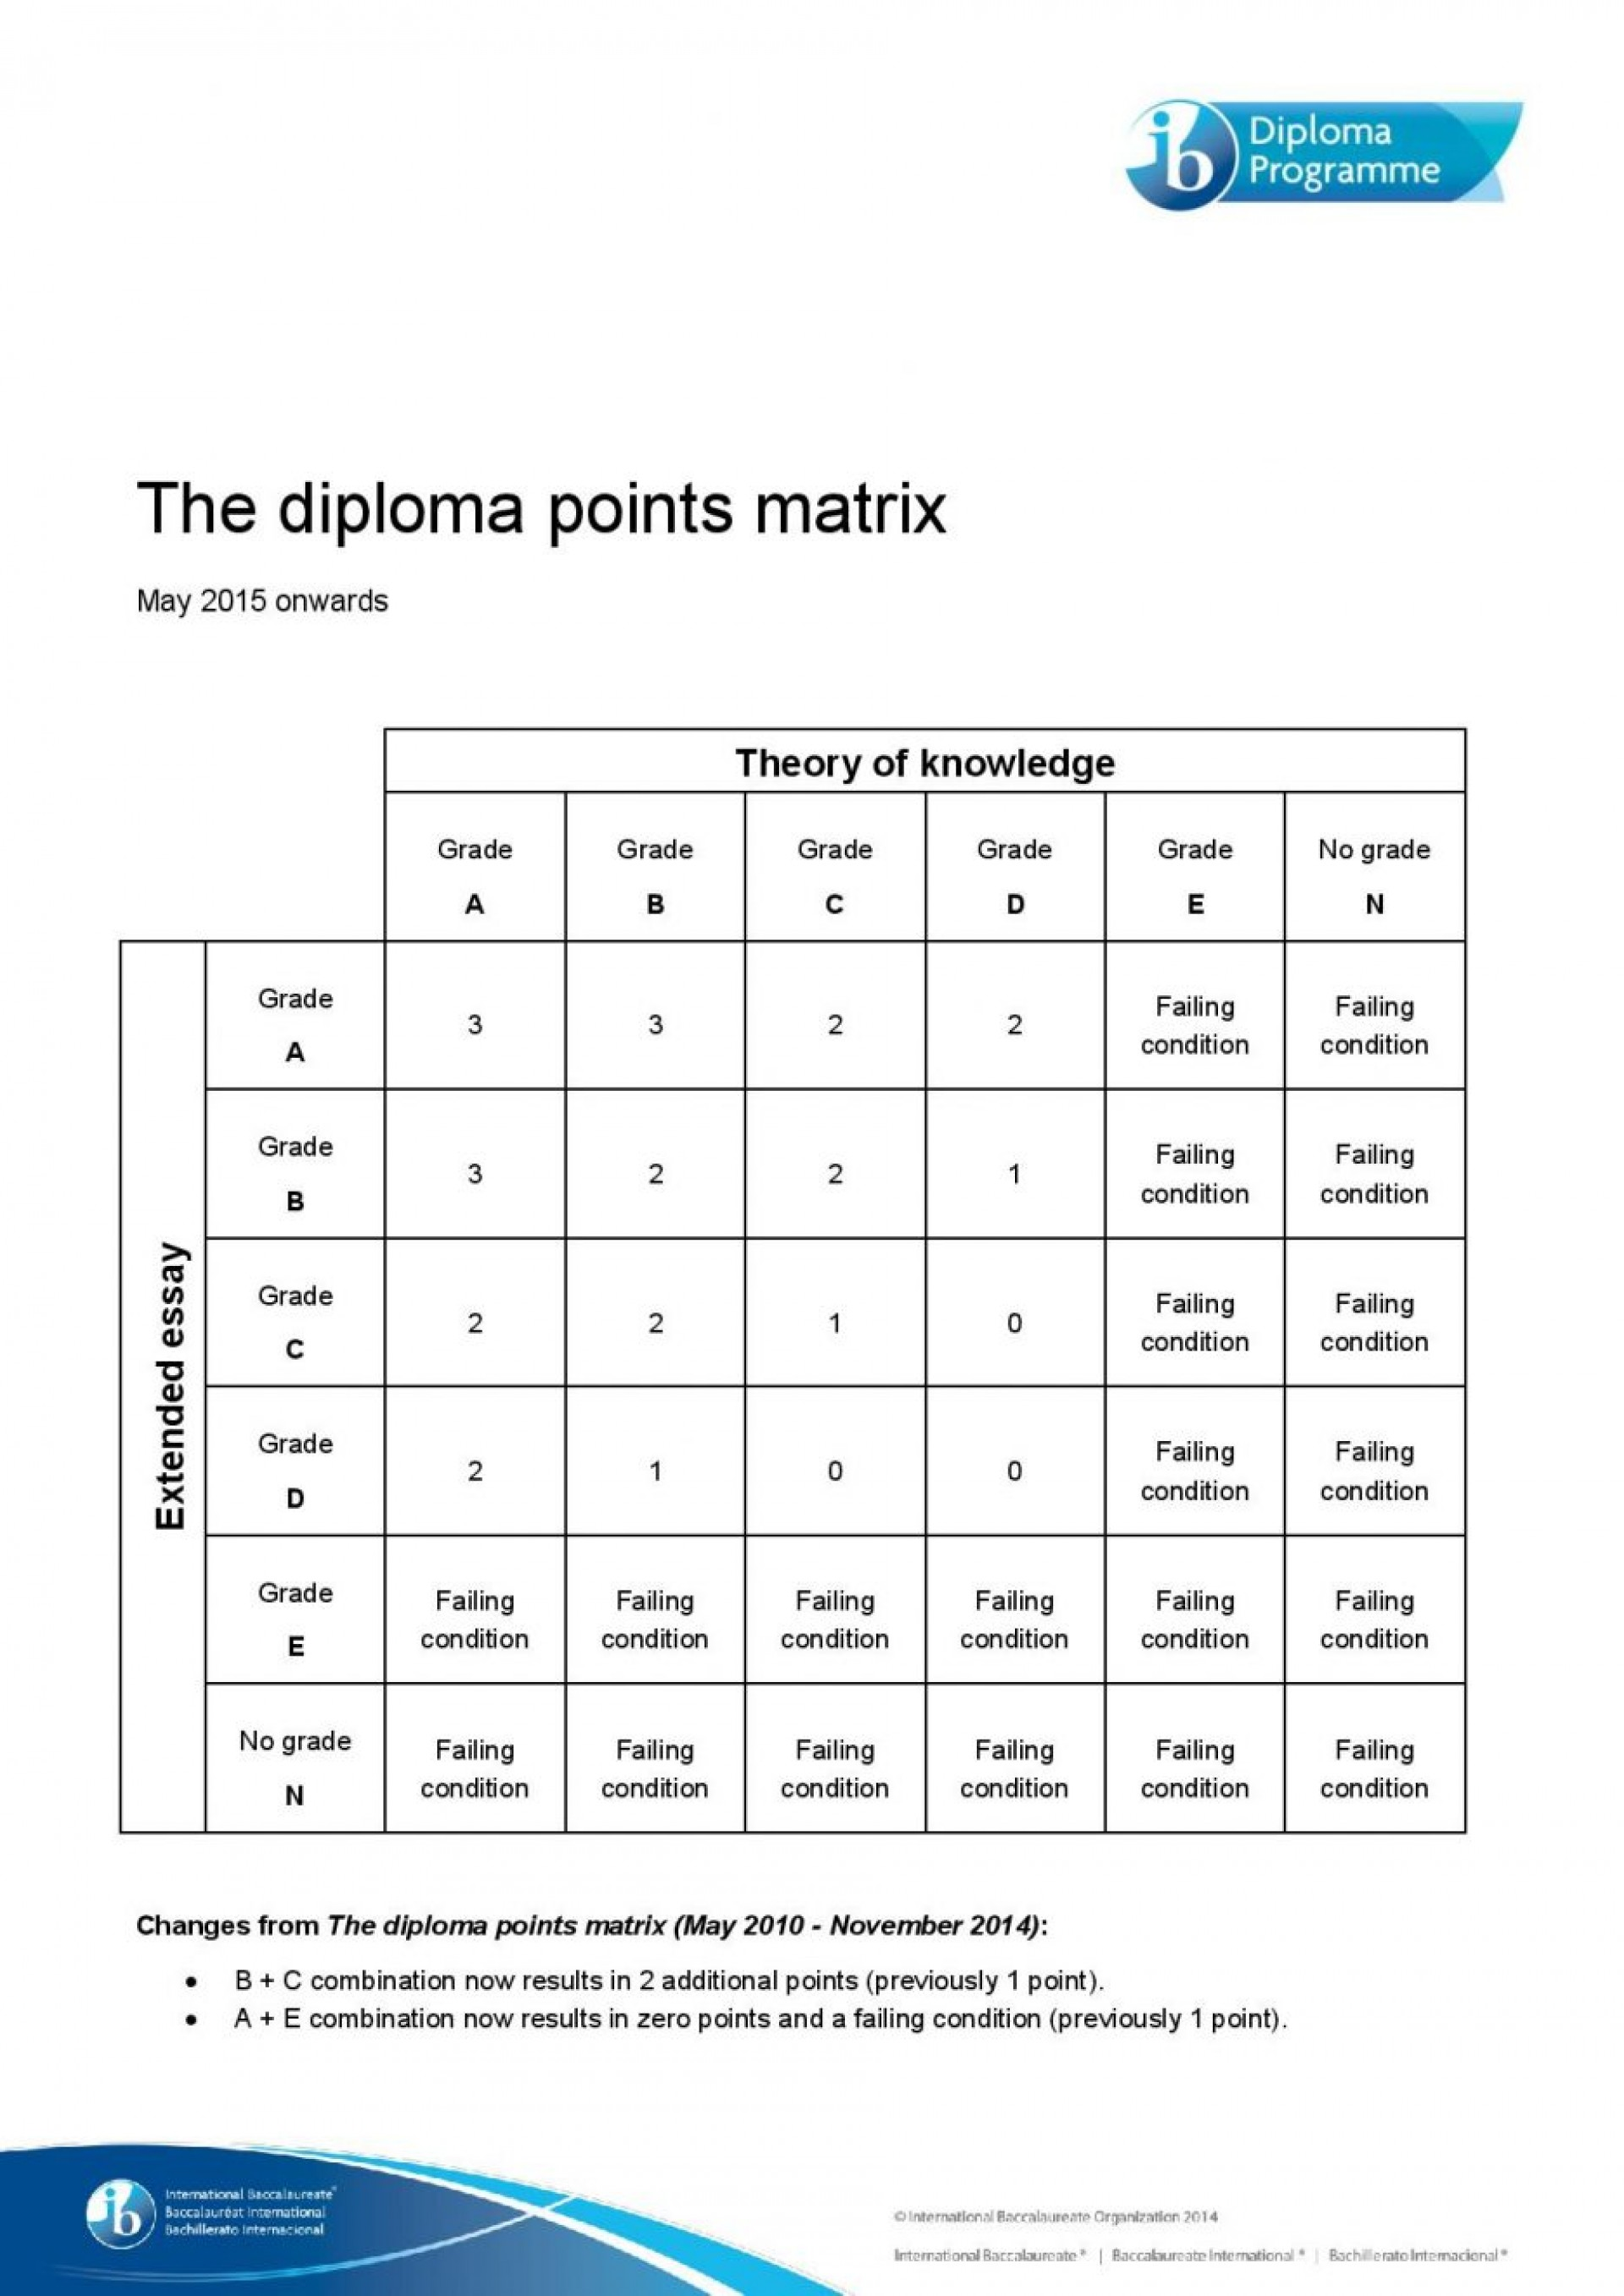 014 Essay Example Tok Writers The Diploma Points Matrix Onwards Page Ib Theory Of Knowledge Questions Rubric Word Limit Titles Examples Topics Stupendous Extended 2019 2016 1920